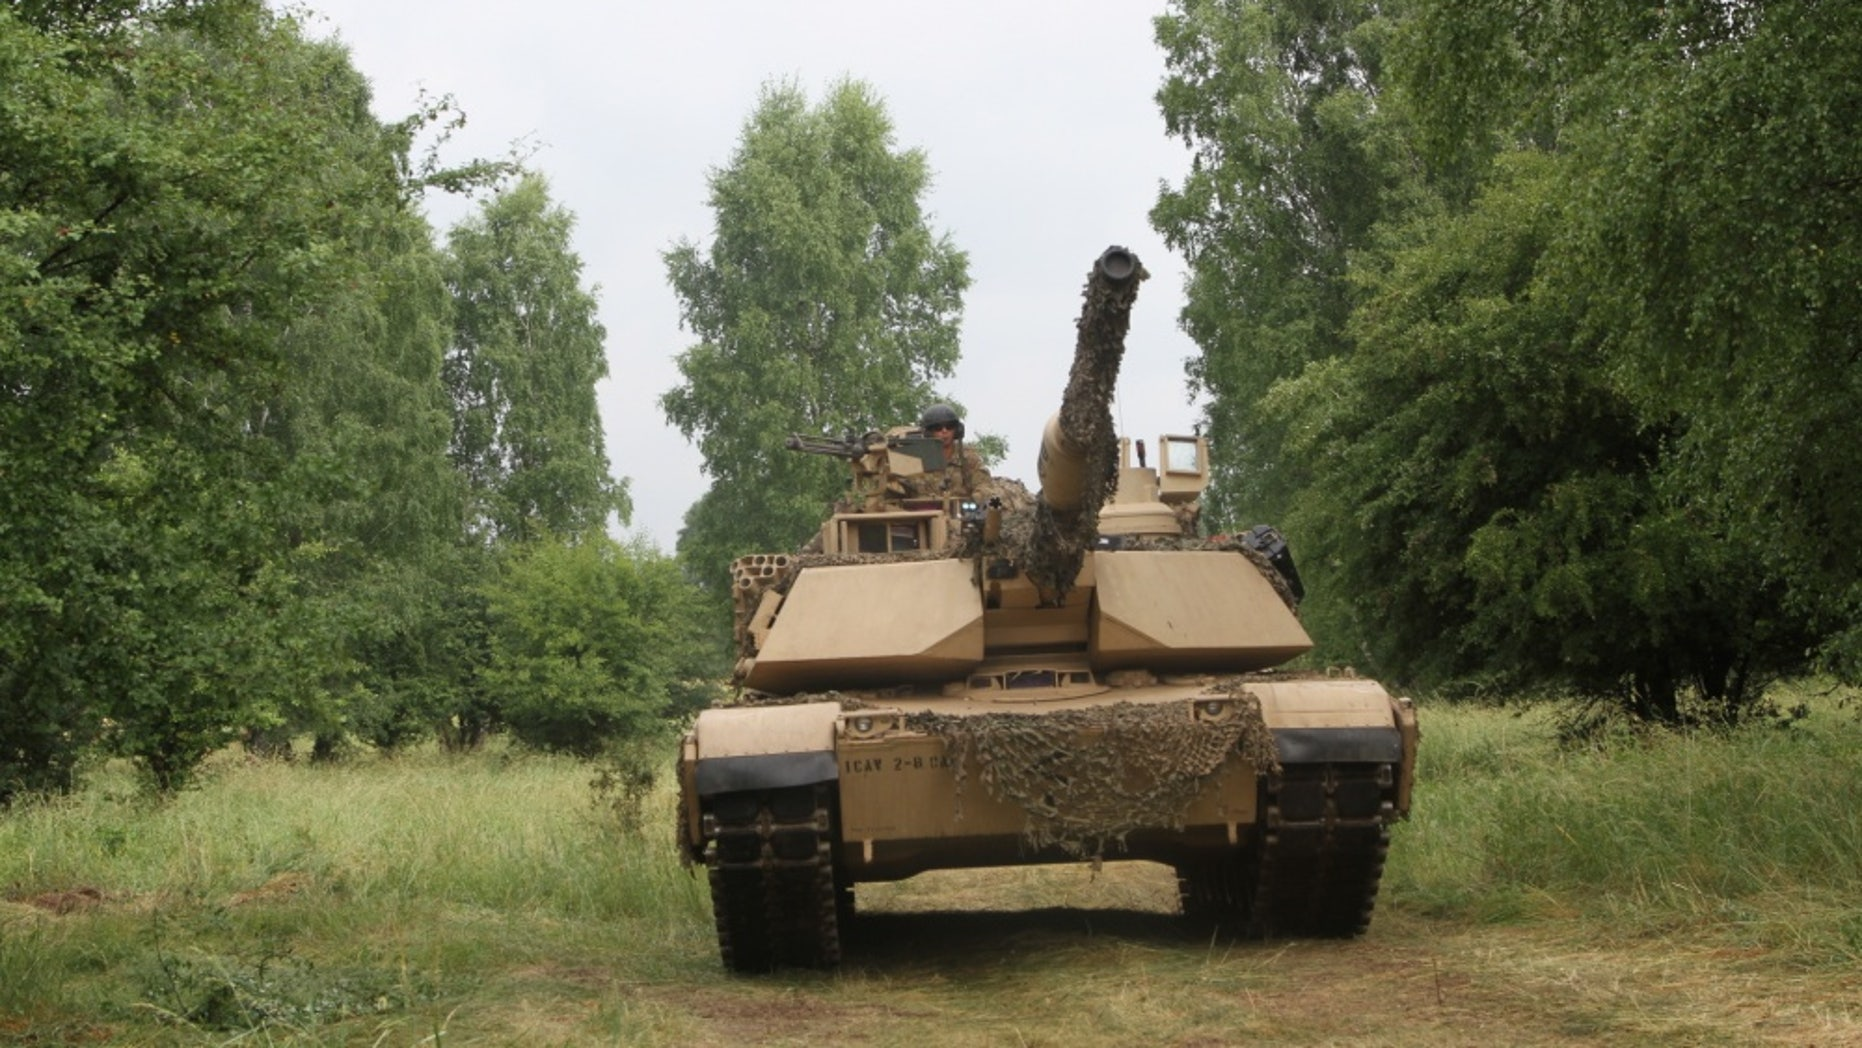 "File photo - Tank crewmen from Bravo Company ""Eager Arms"", 2nd Battalion, 8th Regiment, 1st Armored Brigade Combat Team, 1st Cavalry Division maneuver a M1A2 Abrams tank during a training exercise in Poland, on June 12, 2018. (U.S. Army National Guard photo by Staff Sgt. Ron Lee, 382nd Public Affairs Detachment, 1ABCT, 1CD/Released)"